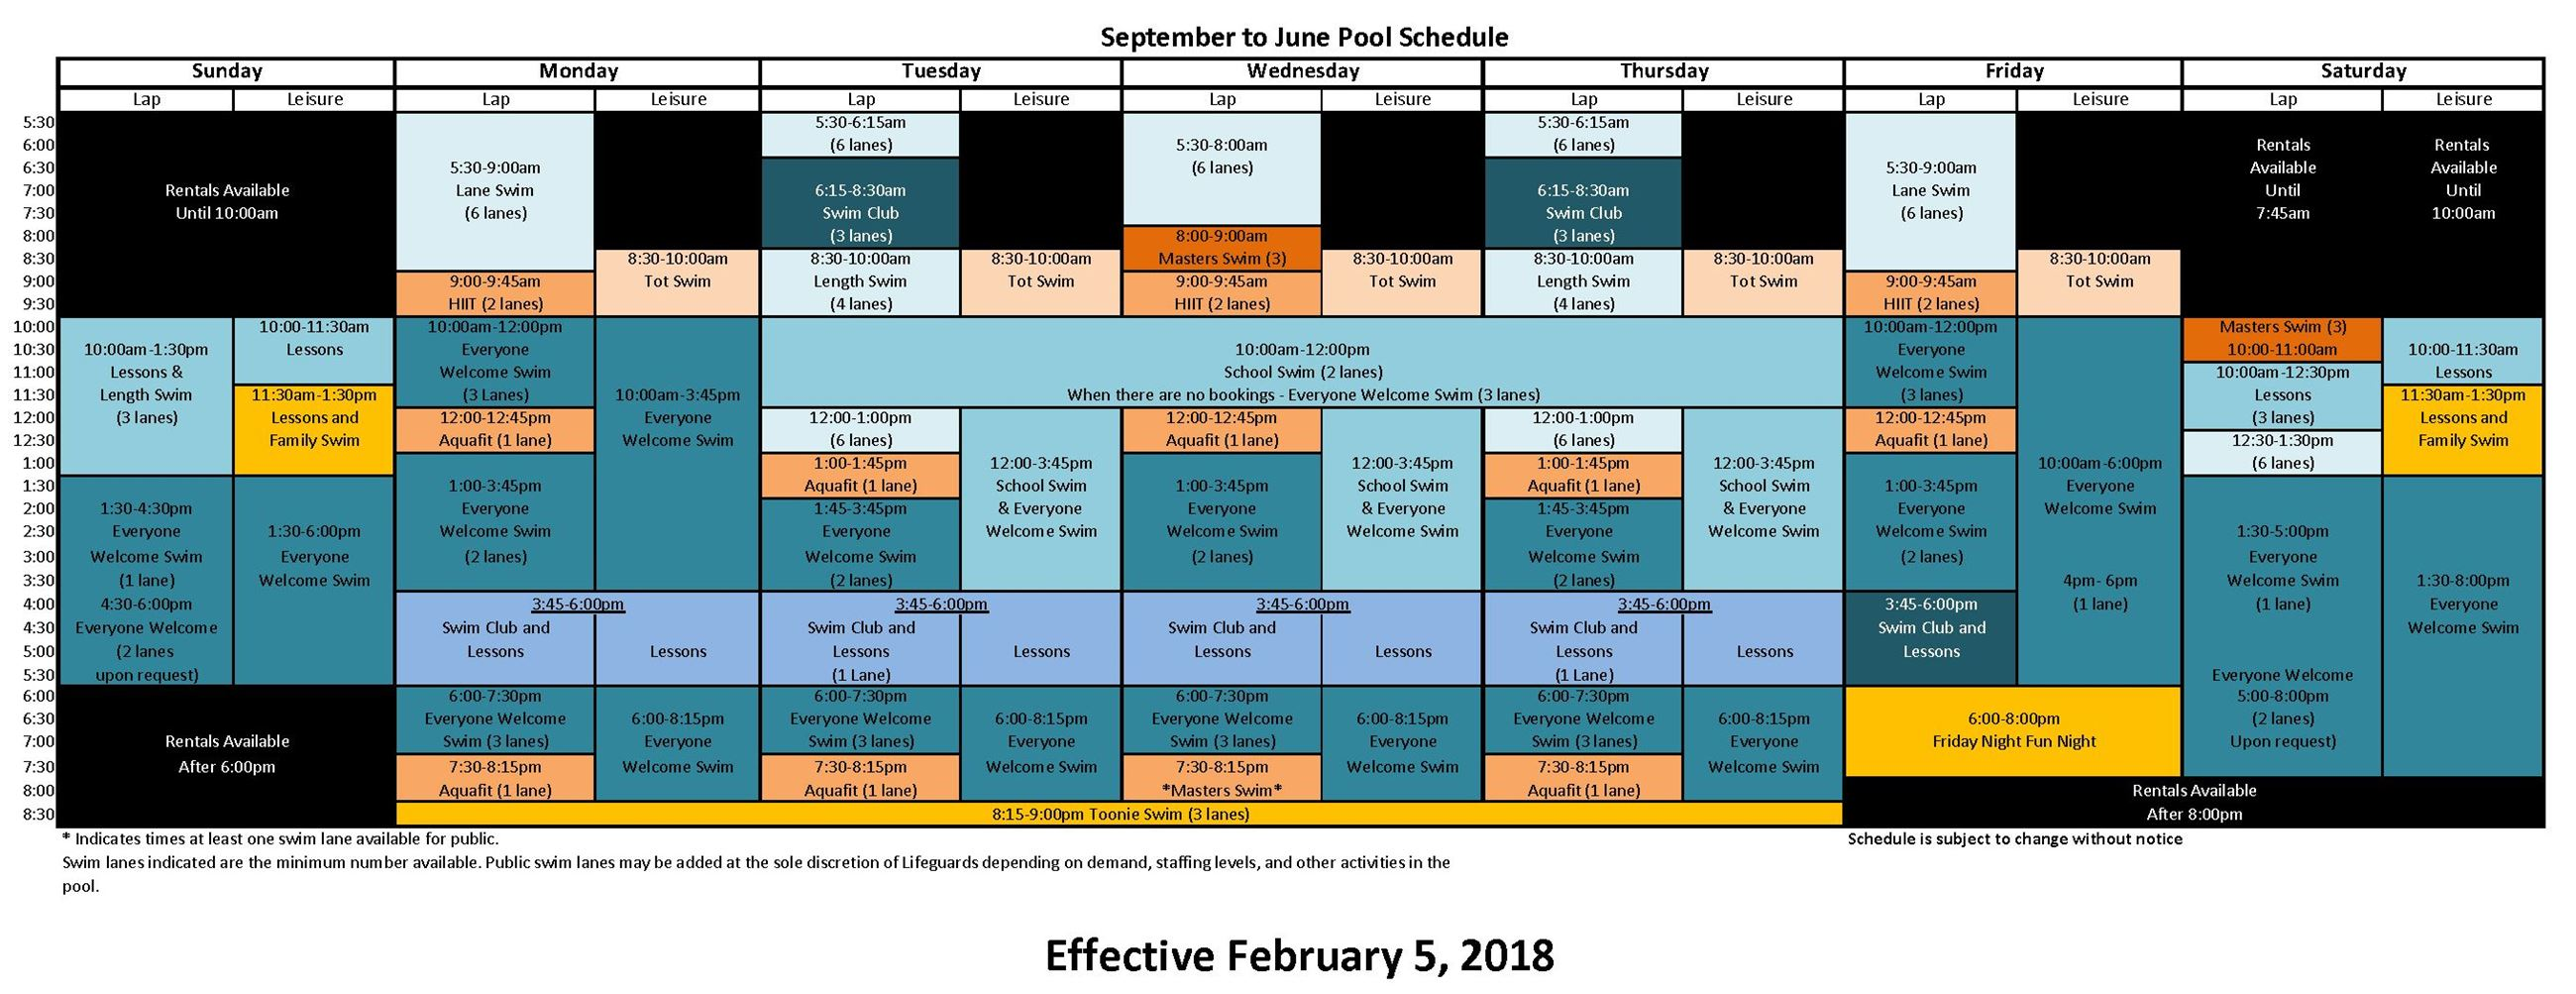 Spring Pool Schedule Feb 5 2018